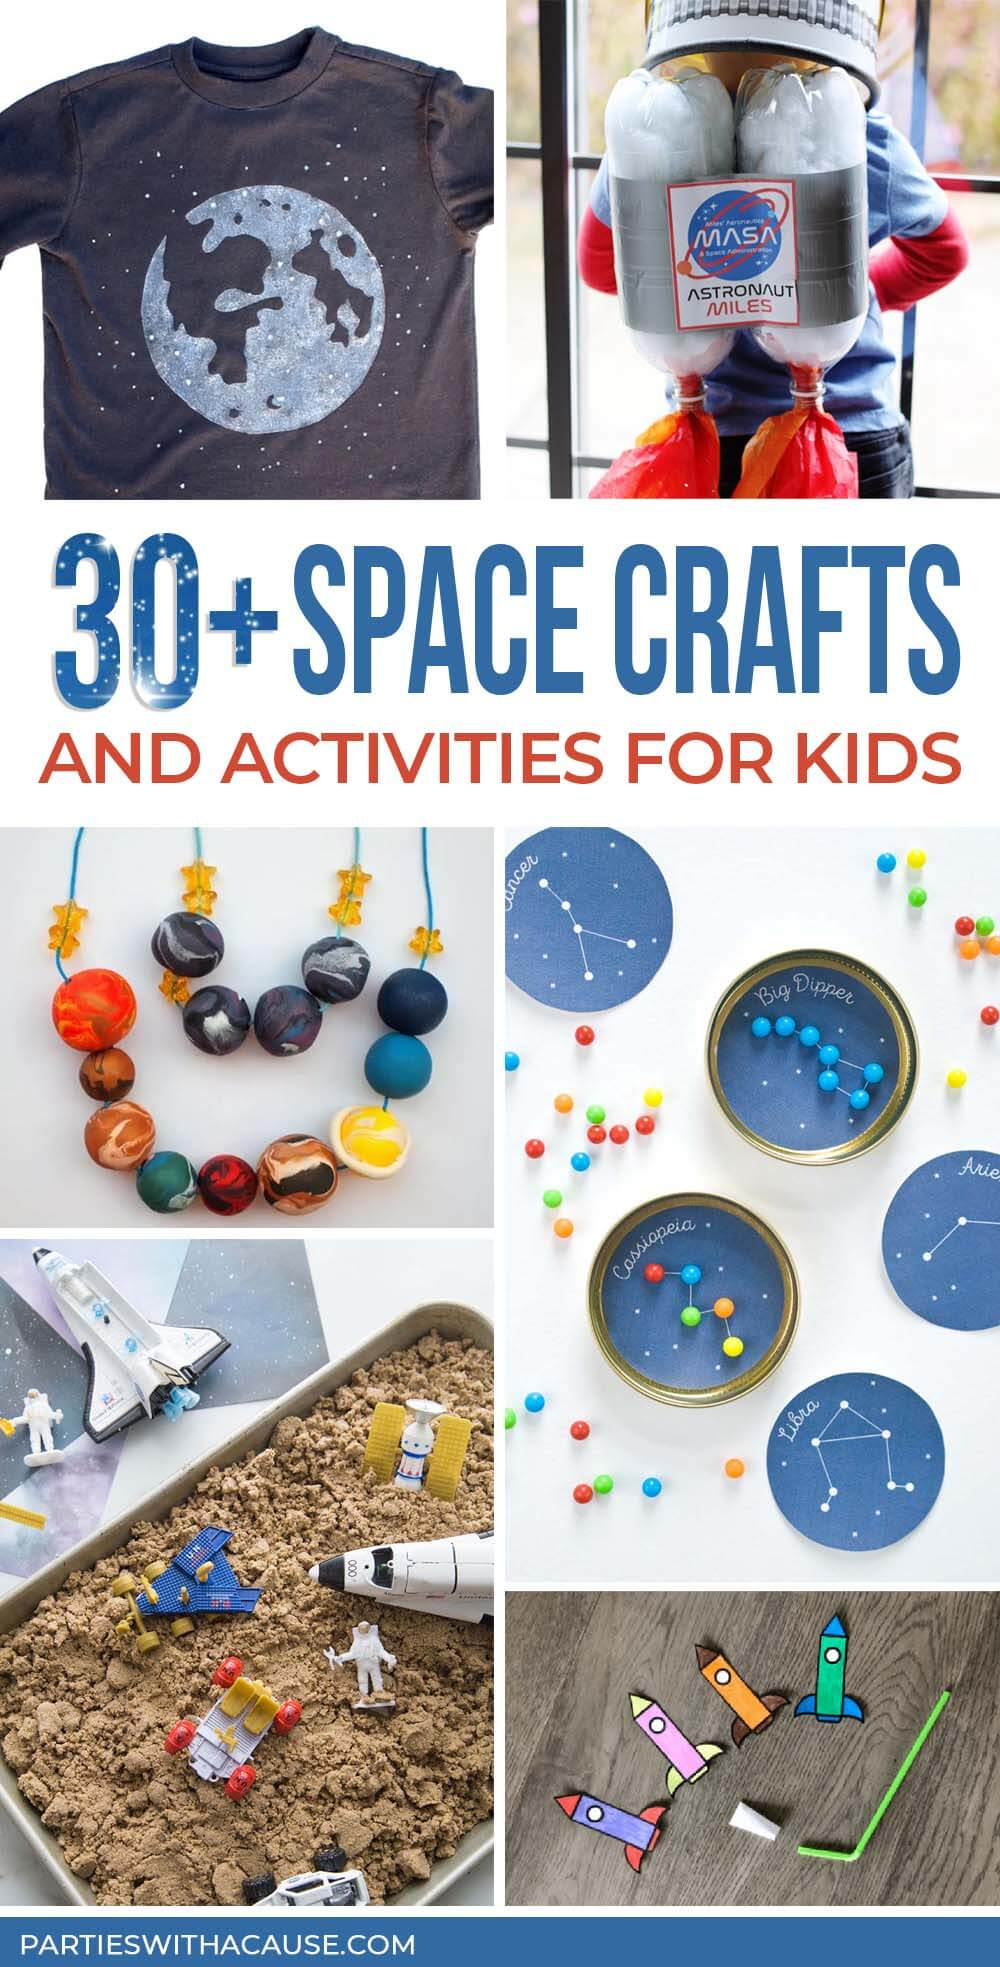 30+ Space Crafts and activities for kids Salt Lake party stylist